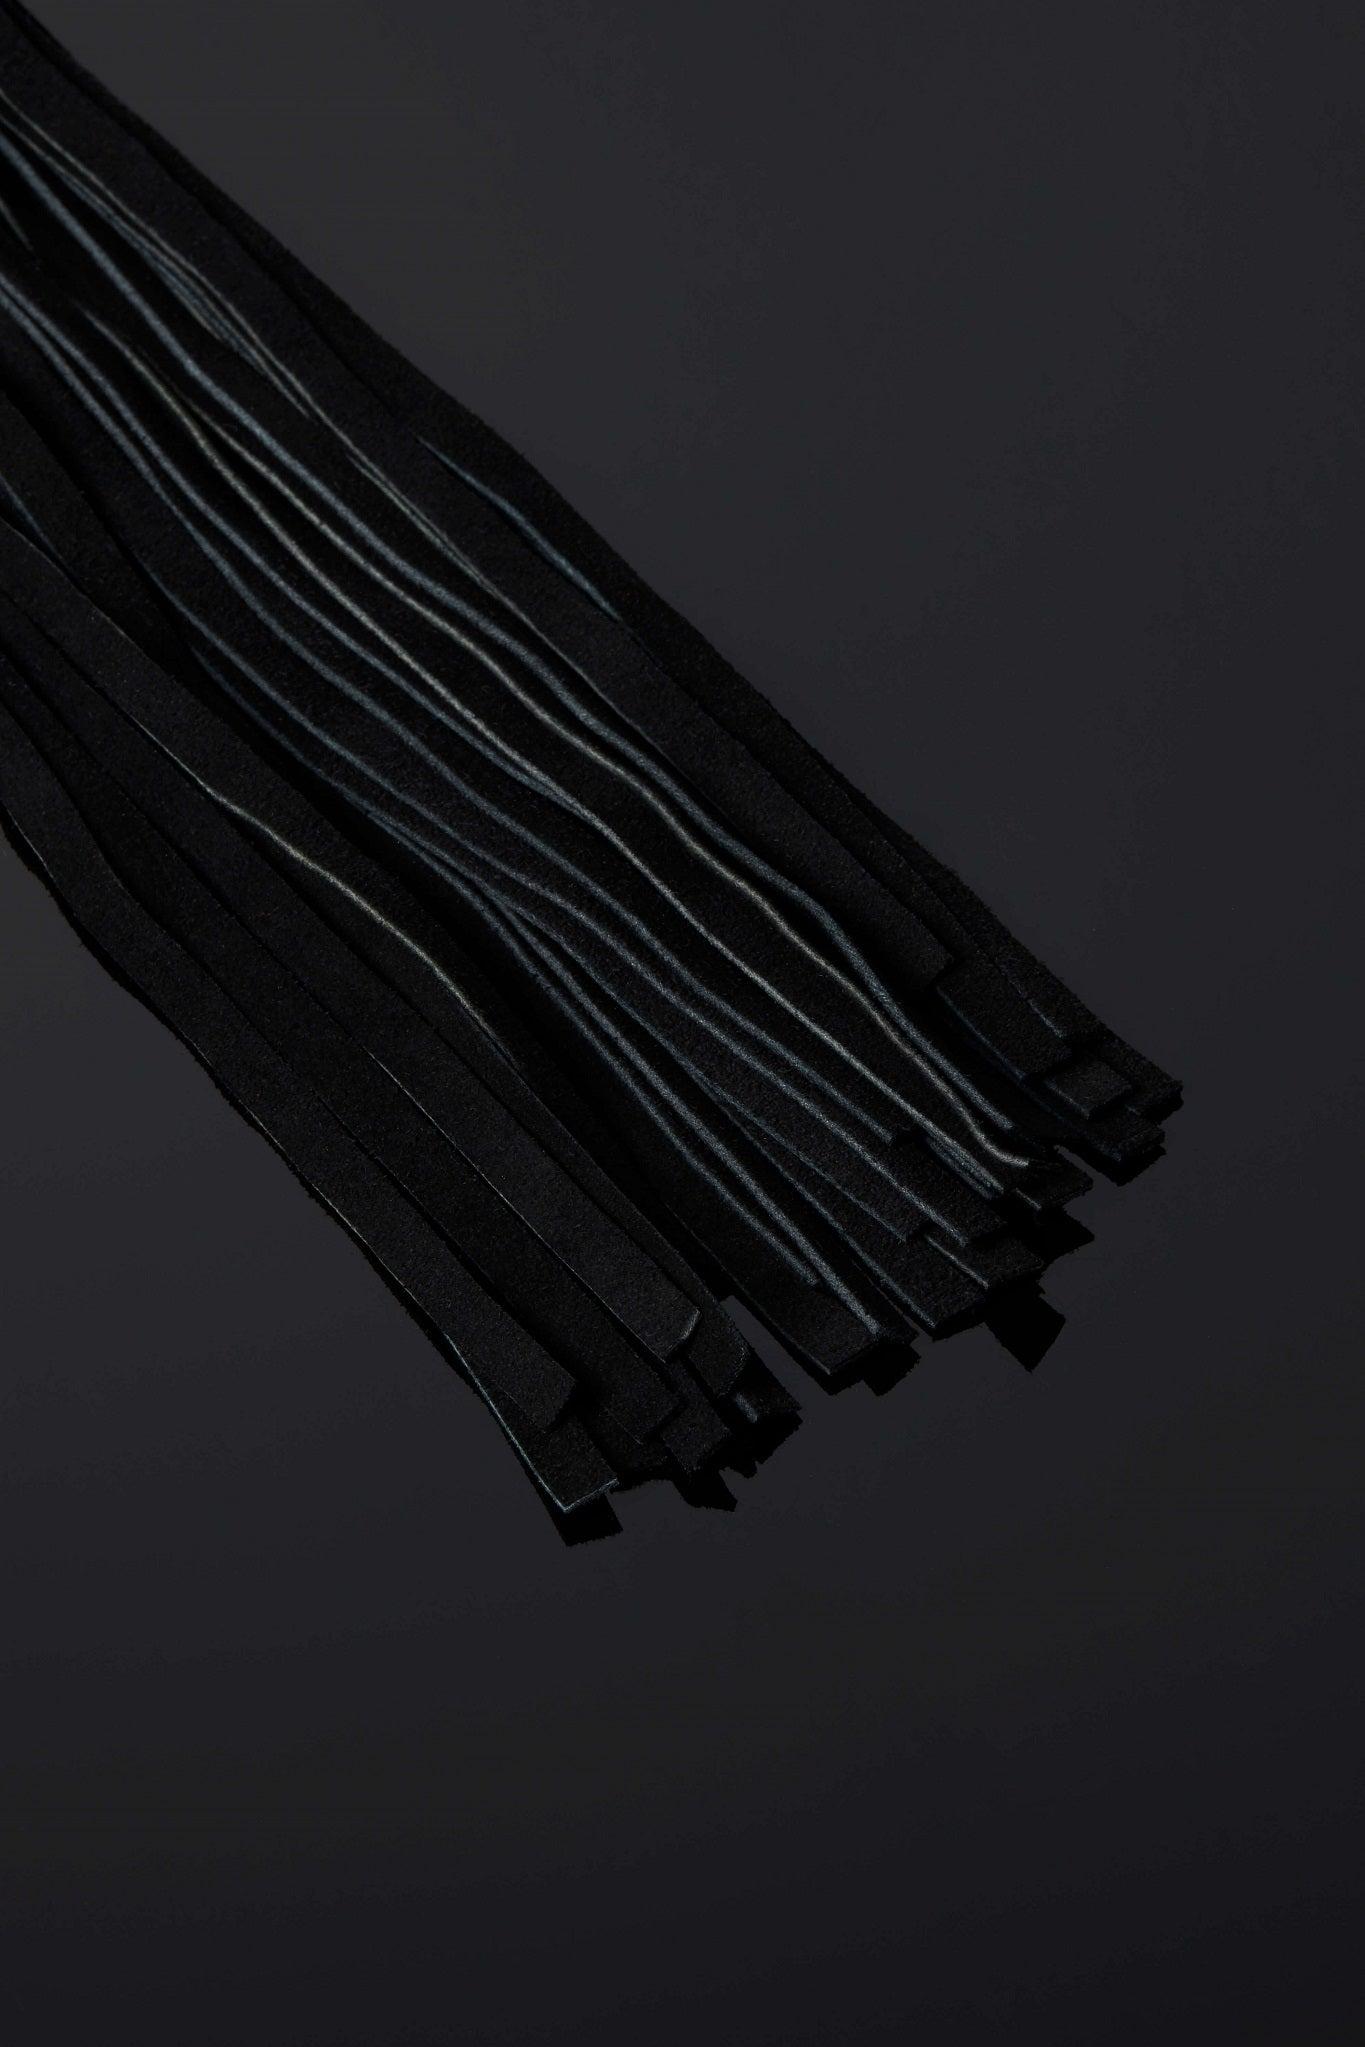 House of SXN Servage Snap Chain Suede Bondage Flogger 2